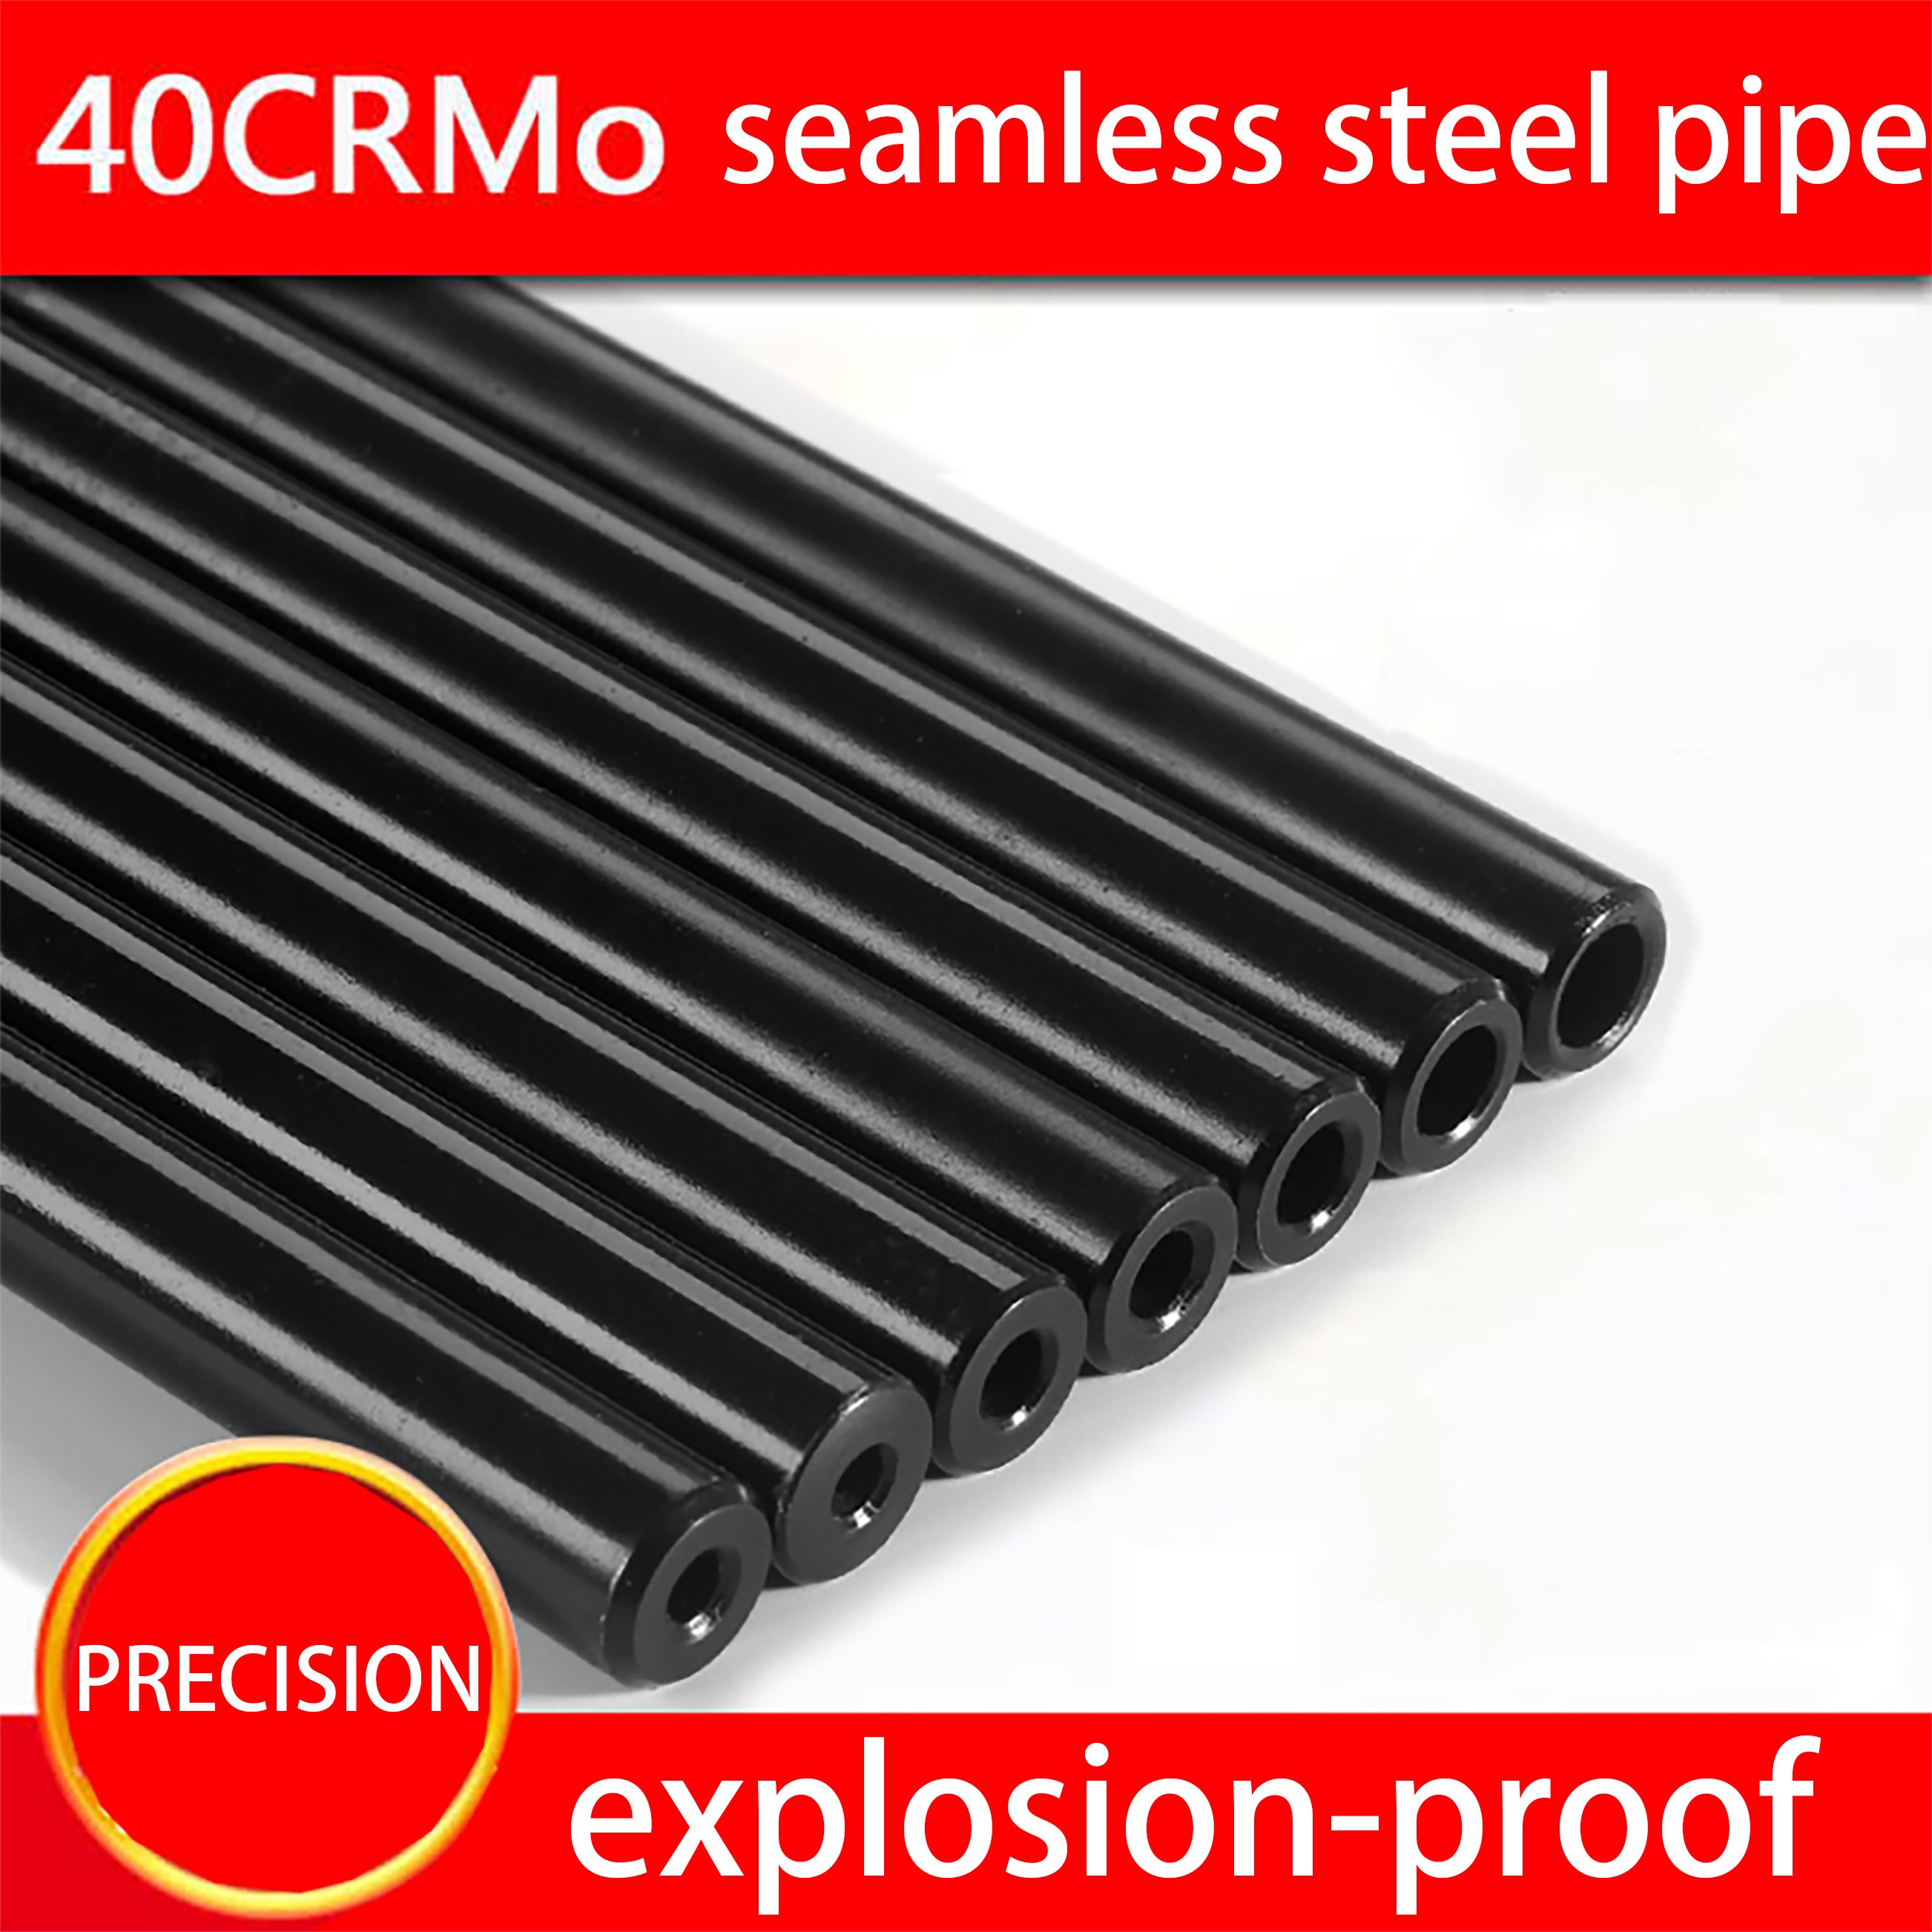 14mm O/D Steel Pipe Seamless Explosion-proof Tool Part Tube Hydraulic Alloy Precision for Home DIY